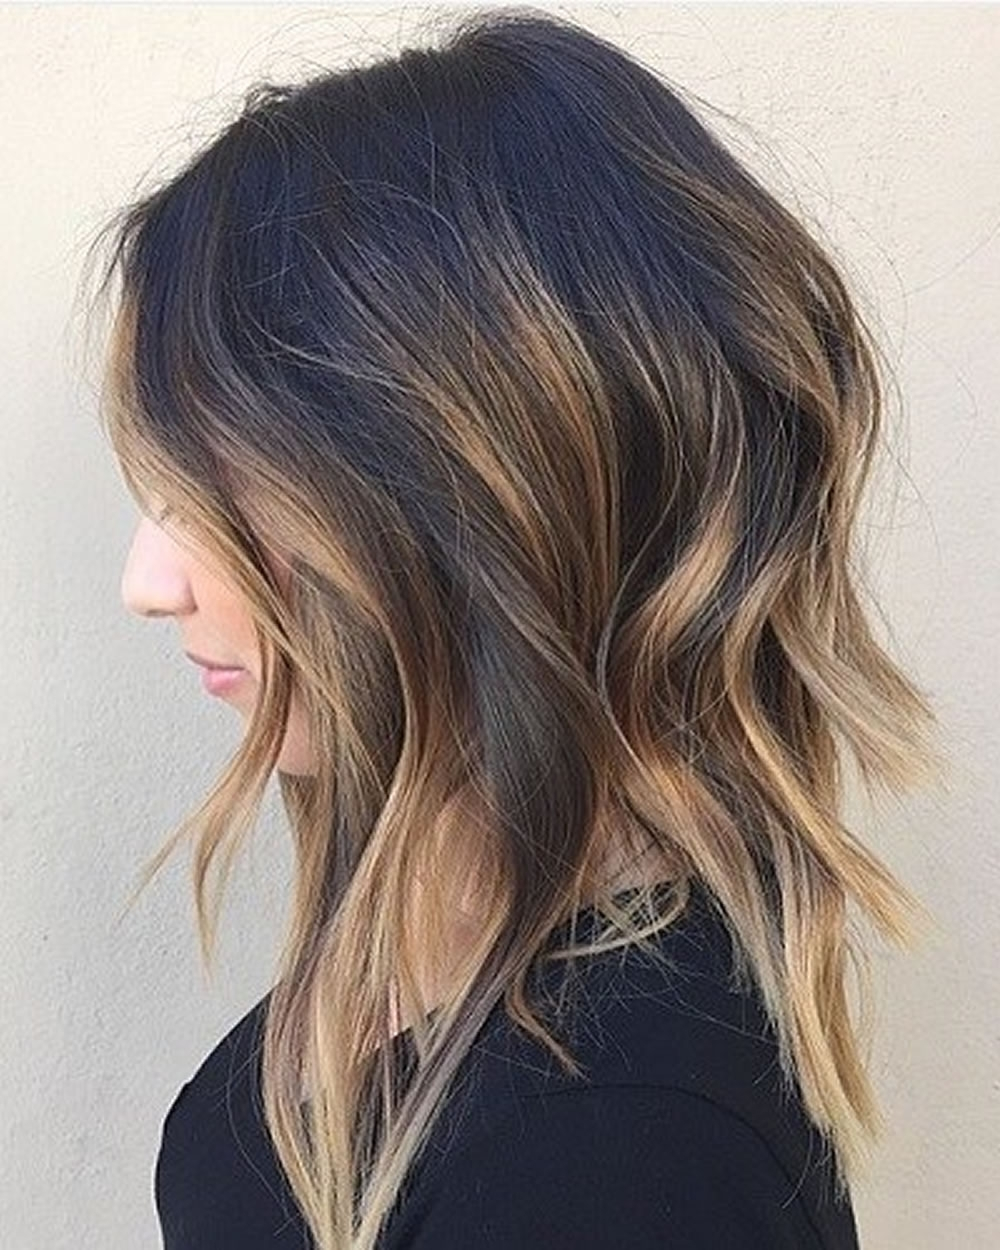 Asymmetrical Short Haircuts With Balayage Highlights 2018 – 2019 Pertaining To Fashionable Shaggy Pixie Hairstyles With Balayage Highlights (Gallery 18 of 20)